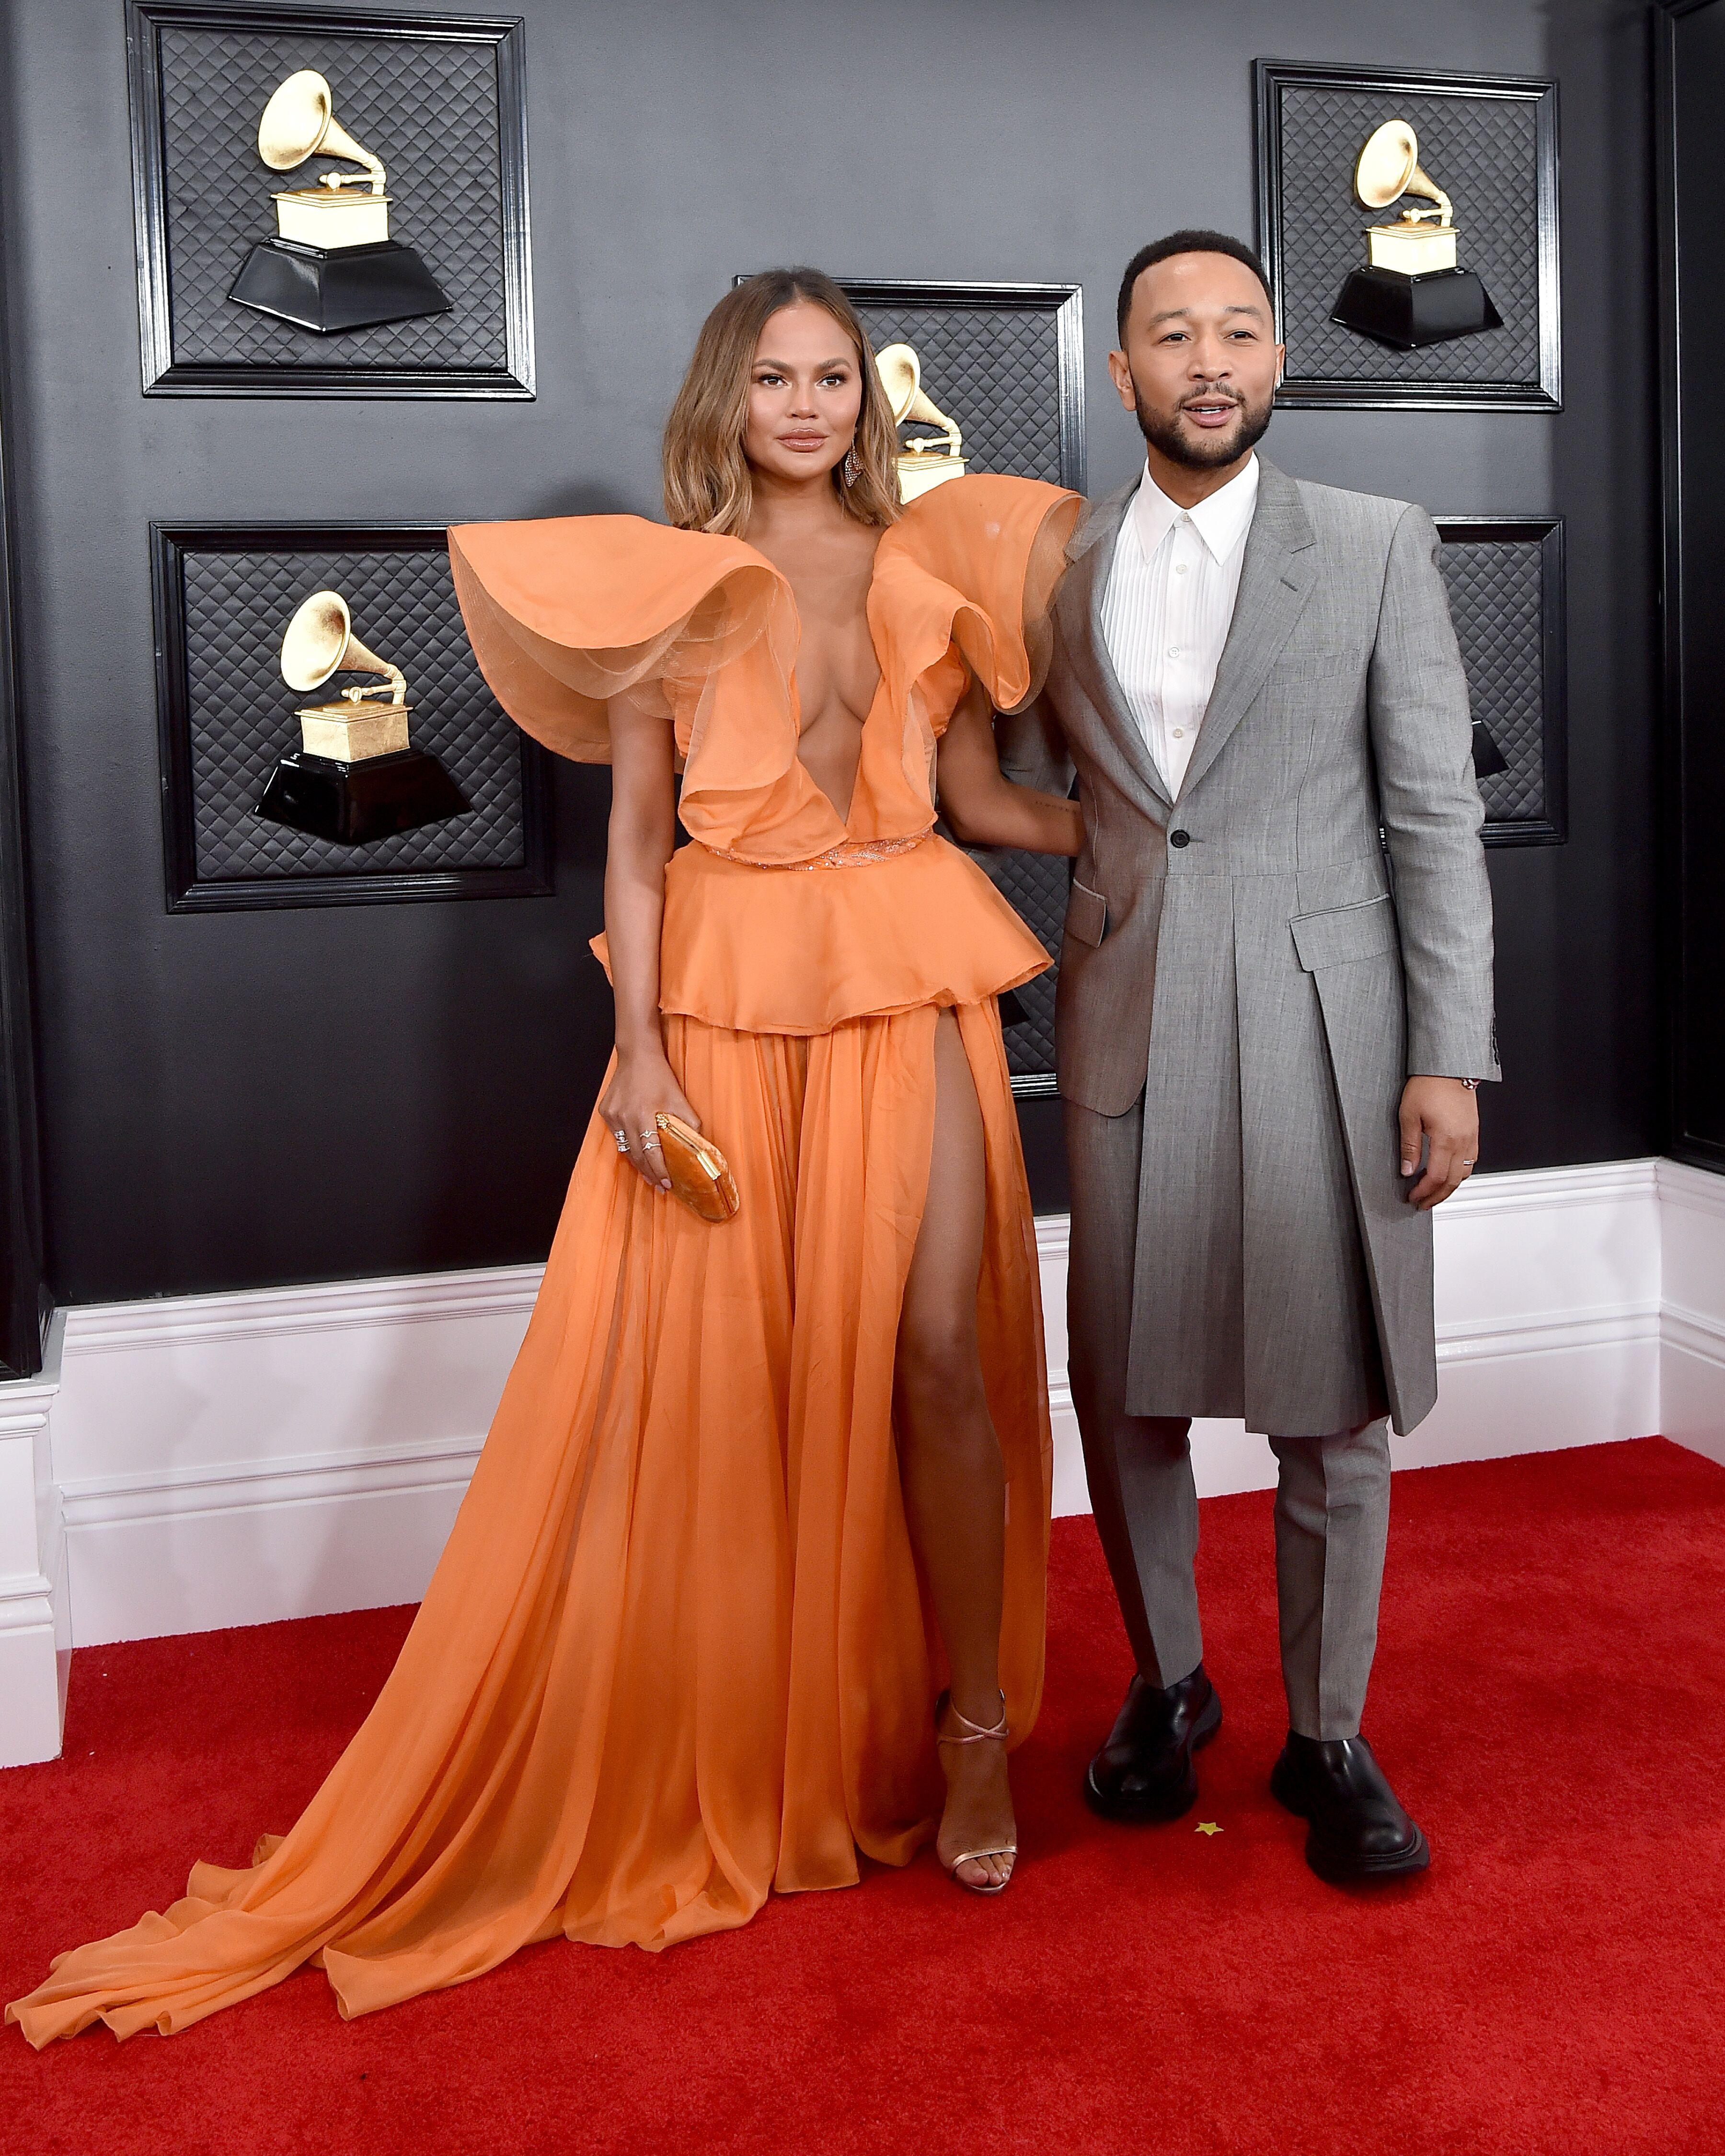 Chrissy Teigen and John Legend attend the 62nd Annual GRAMMY Awards at Staples Center on January 26, 2020 in Los Angeles, California. | Source: Getty Images